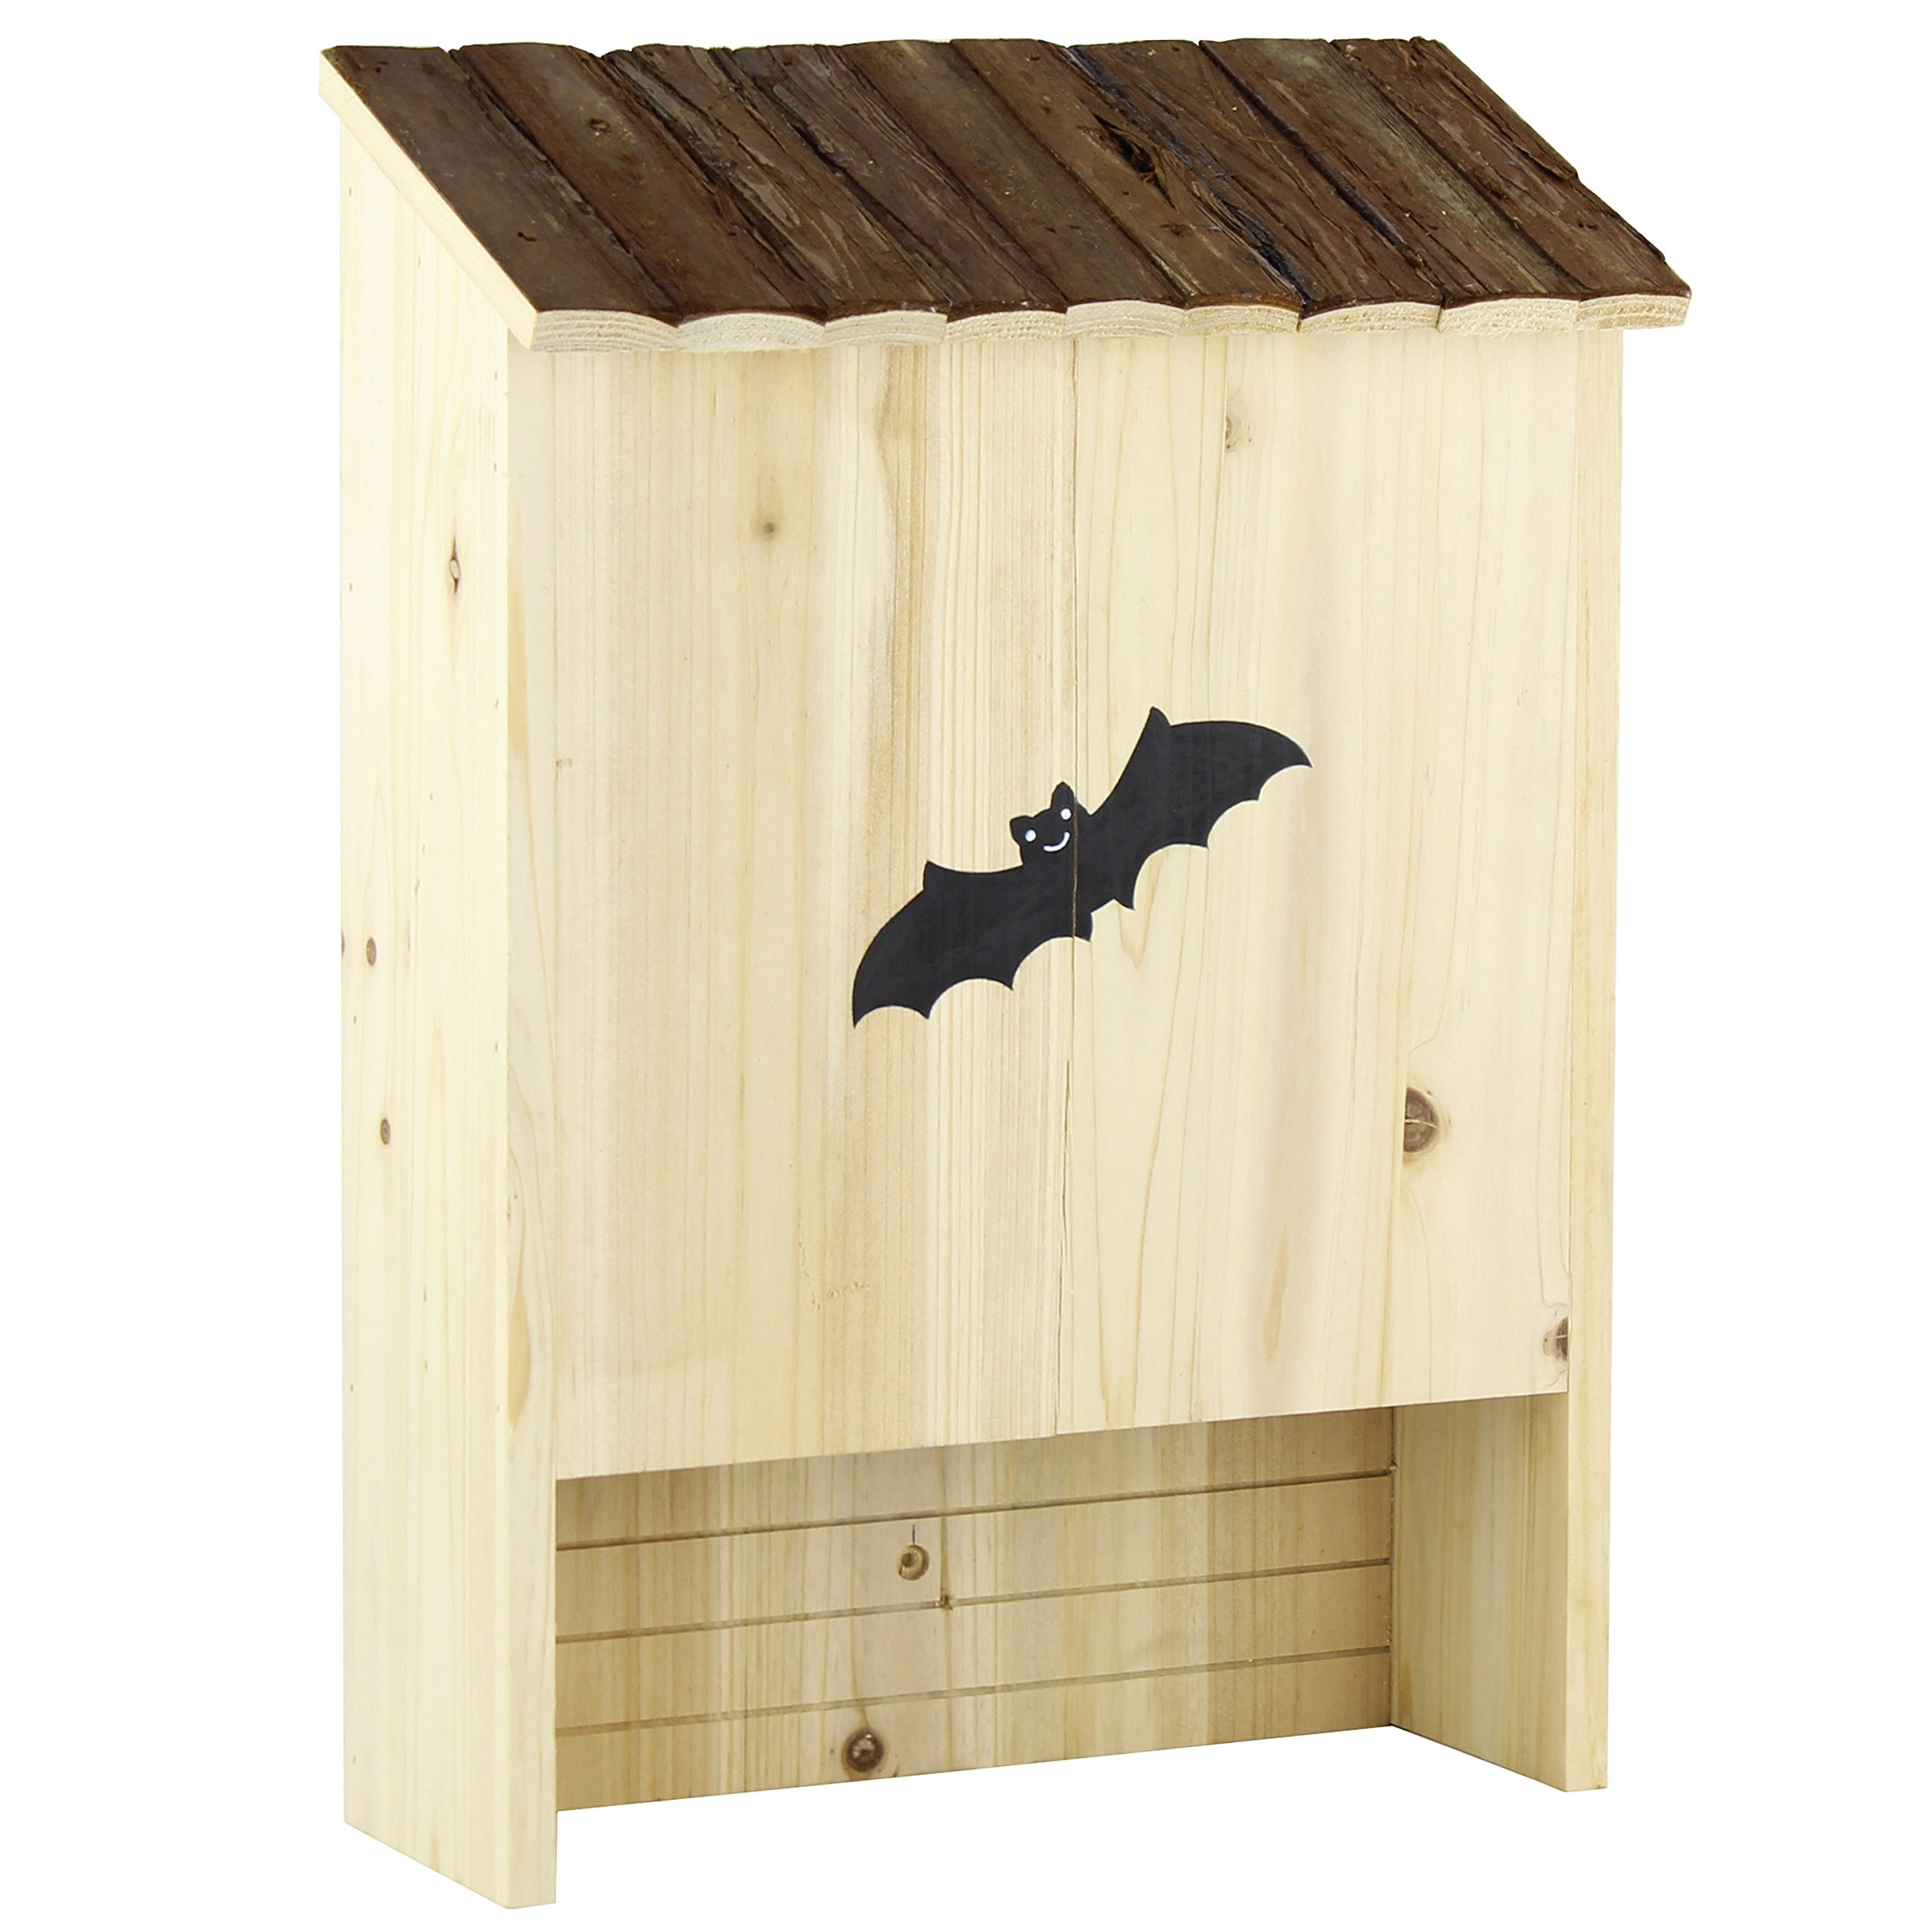 Gardirect Natural Double Chamber Bat House